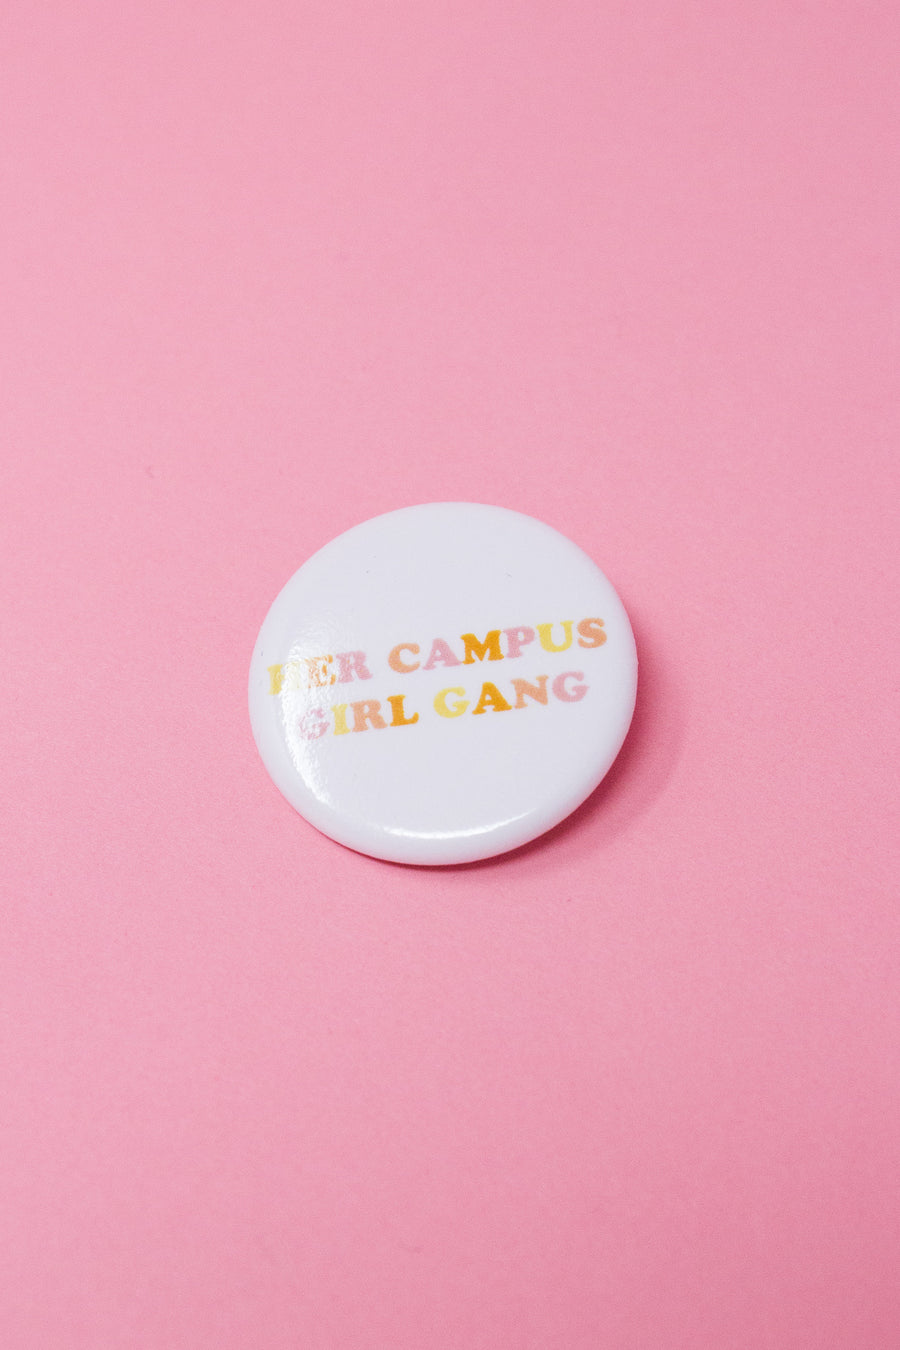 Her Campus Girl Gang Button